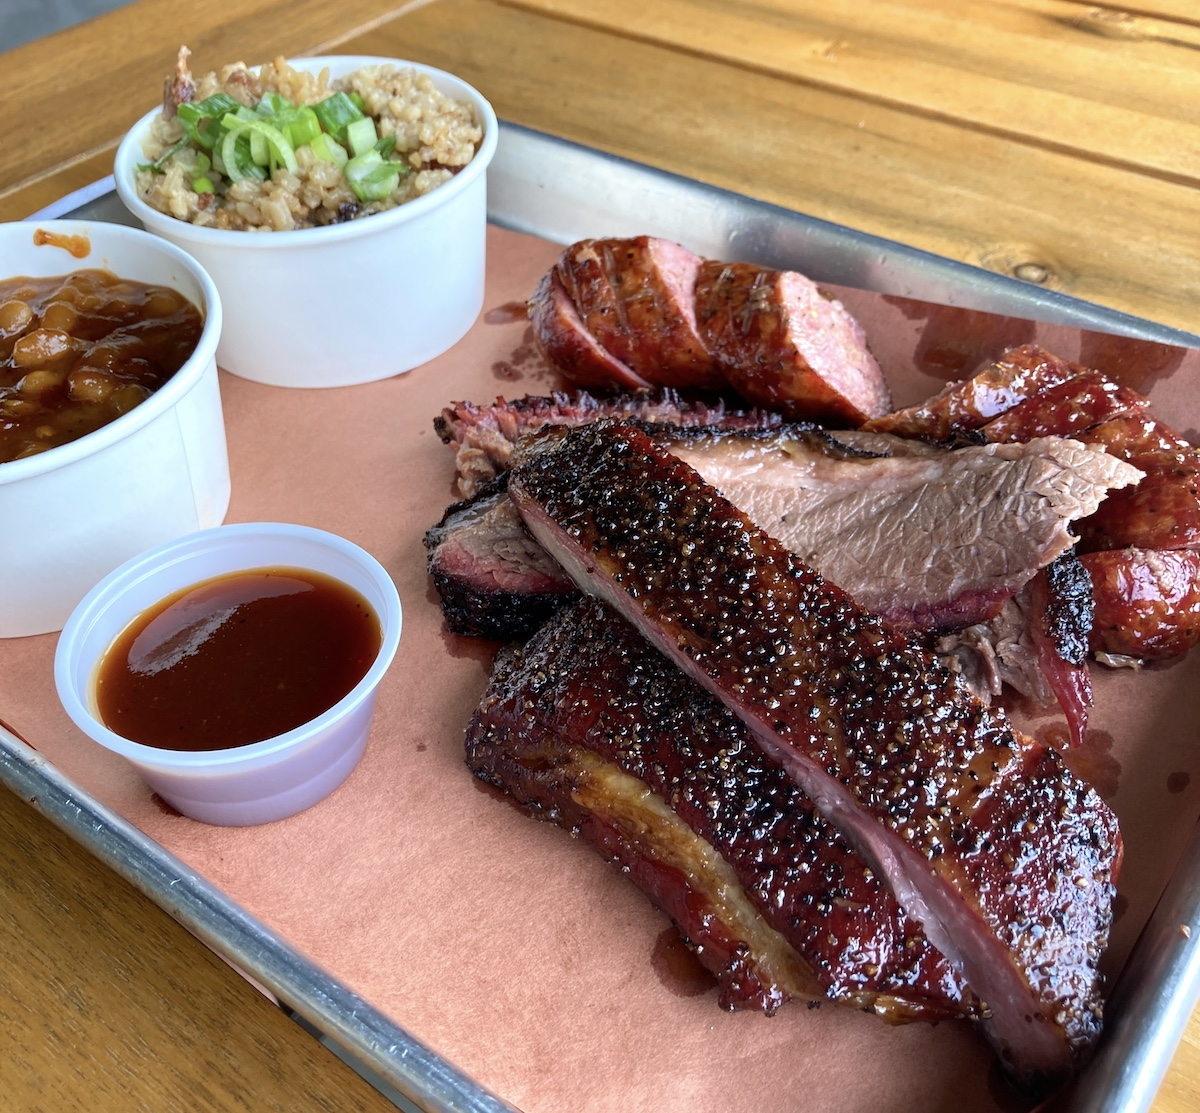 The Texas Trinity of brisket, ribs, and sausage plus the phenomenal barbecue rice at Prime BBQ in Knightdale